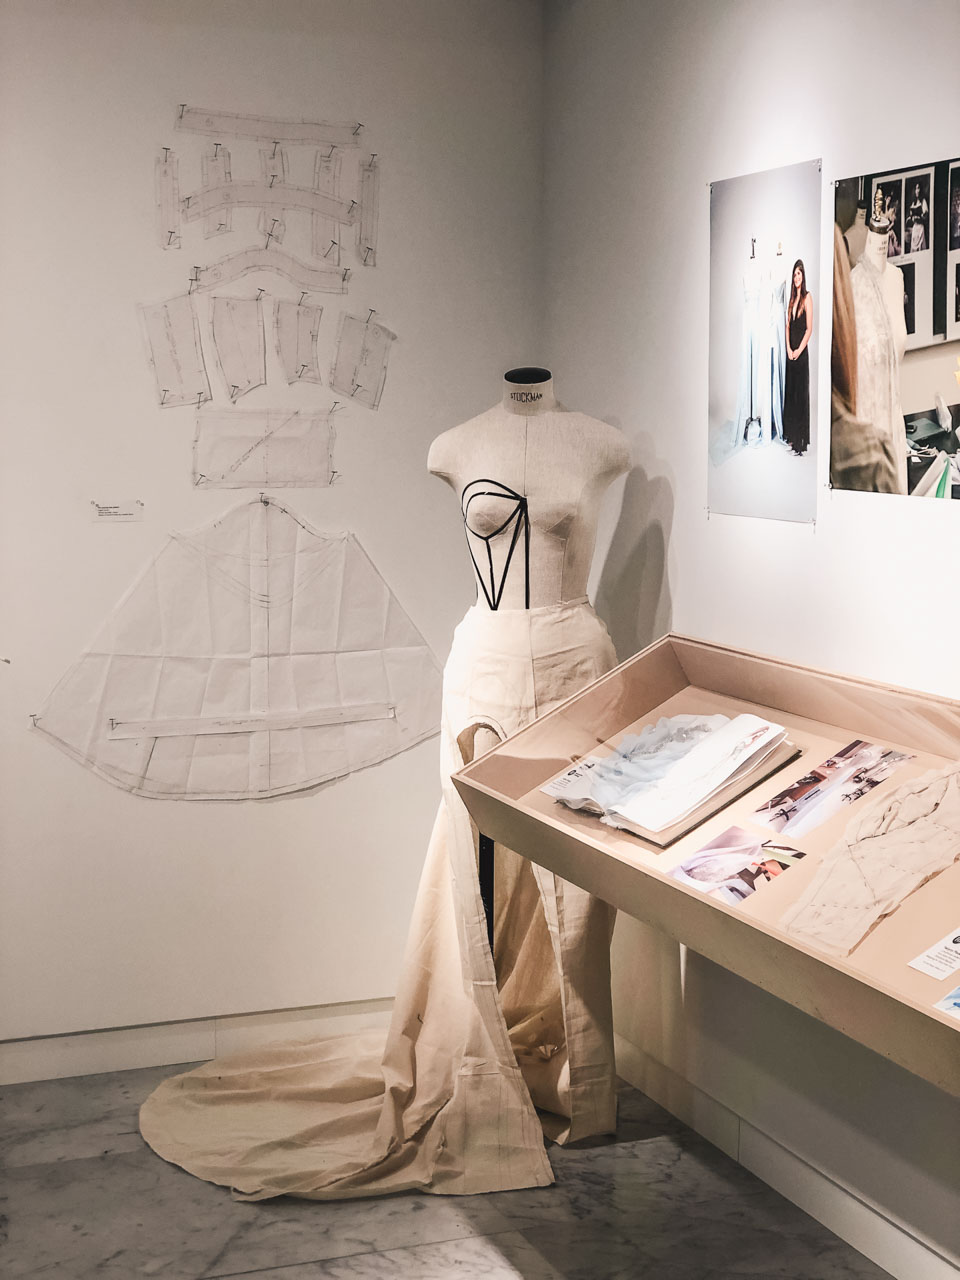 A prototype on display at the Disney on Broadway x FIT Design Challenge Exhibition in New York